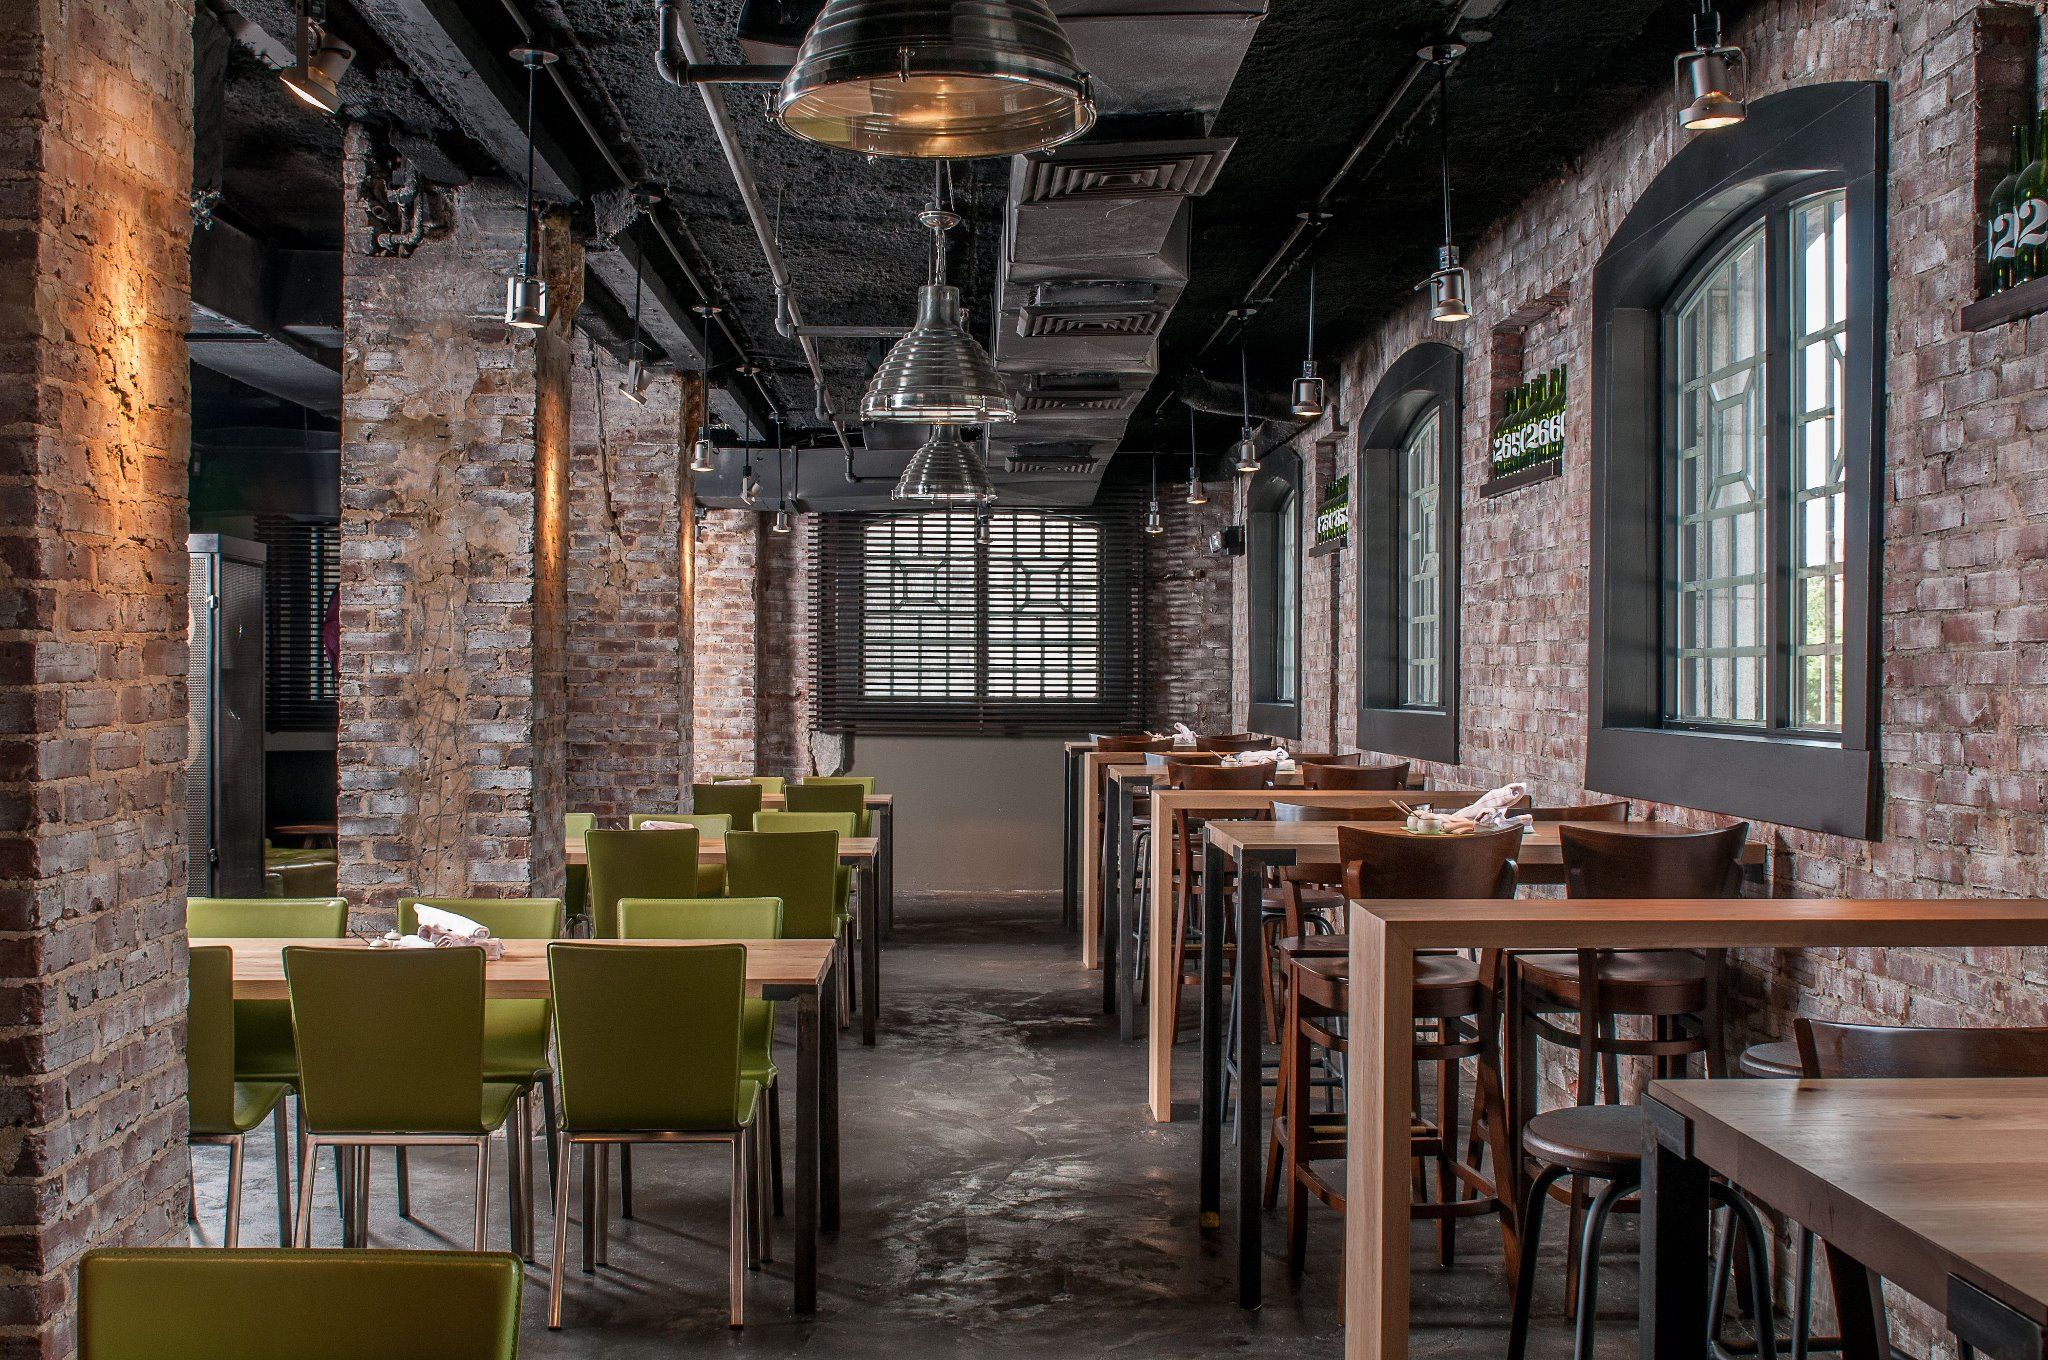 Gorgeous exposed brick restaurant interior architecture